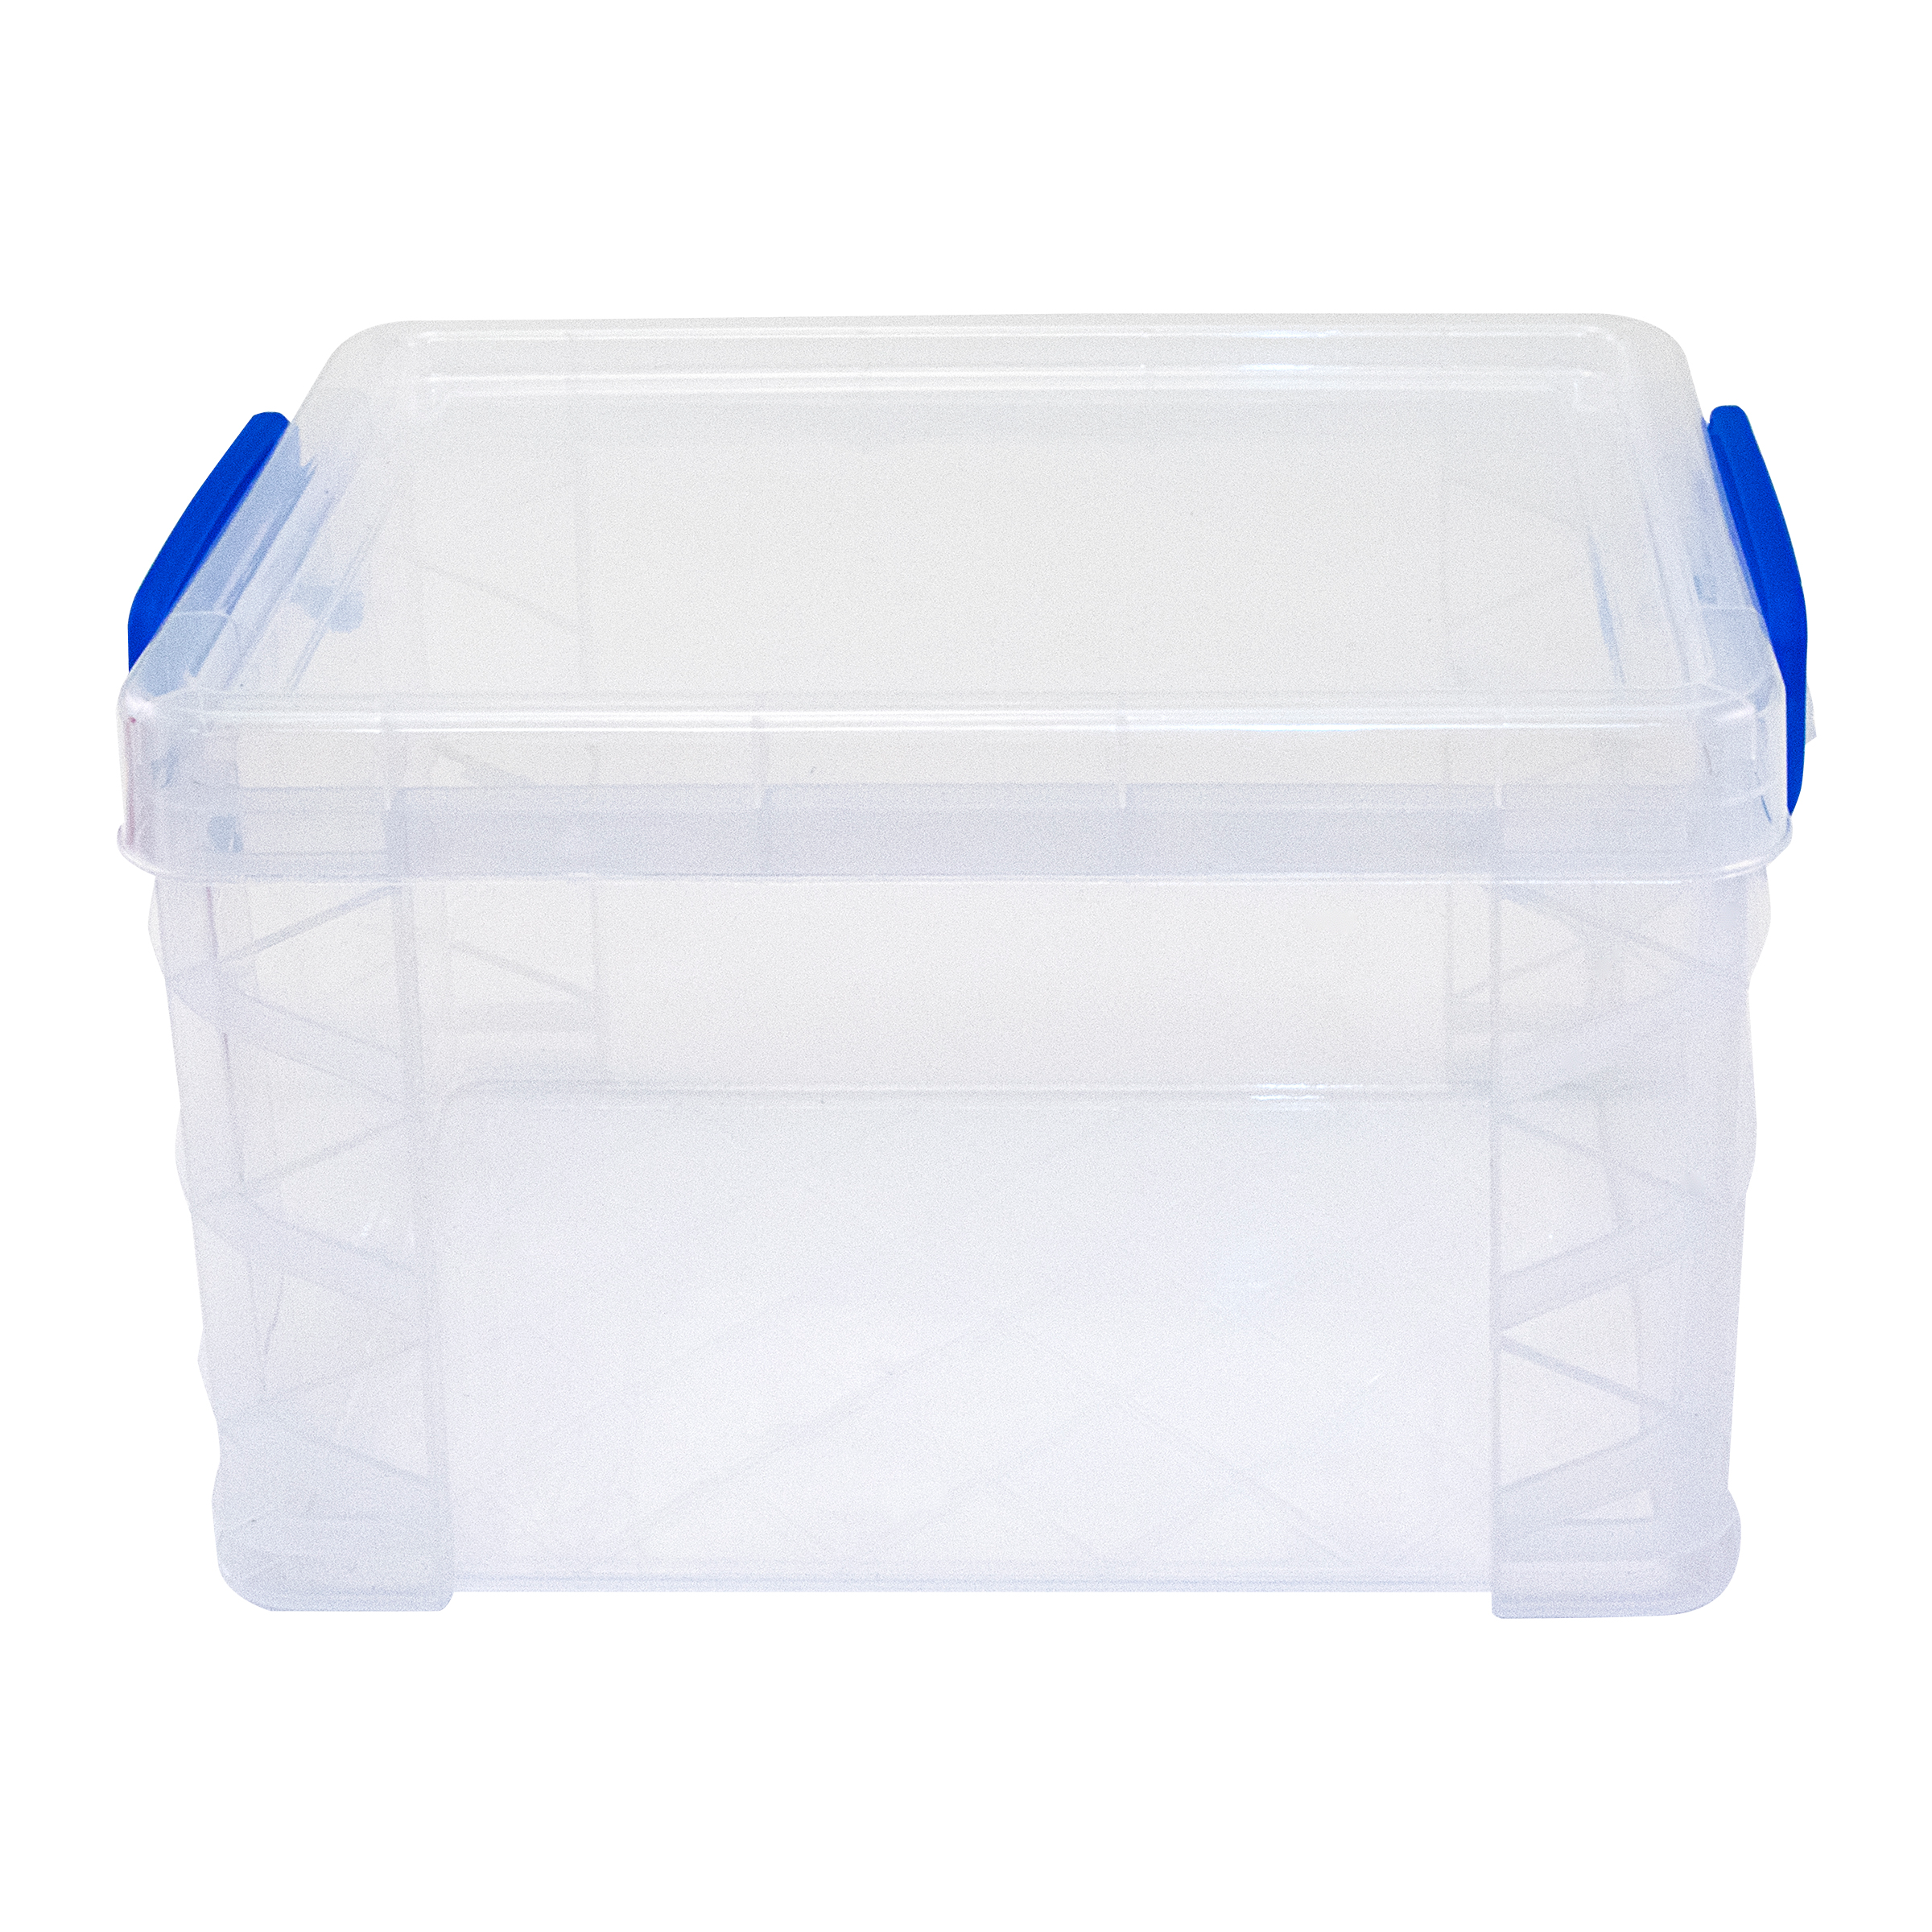 Super Stacker® Storage Box, Clear with blue handles.